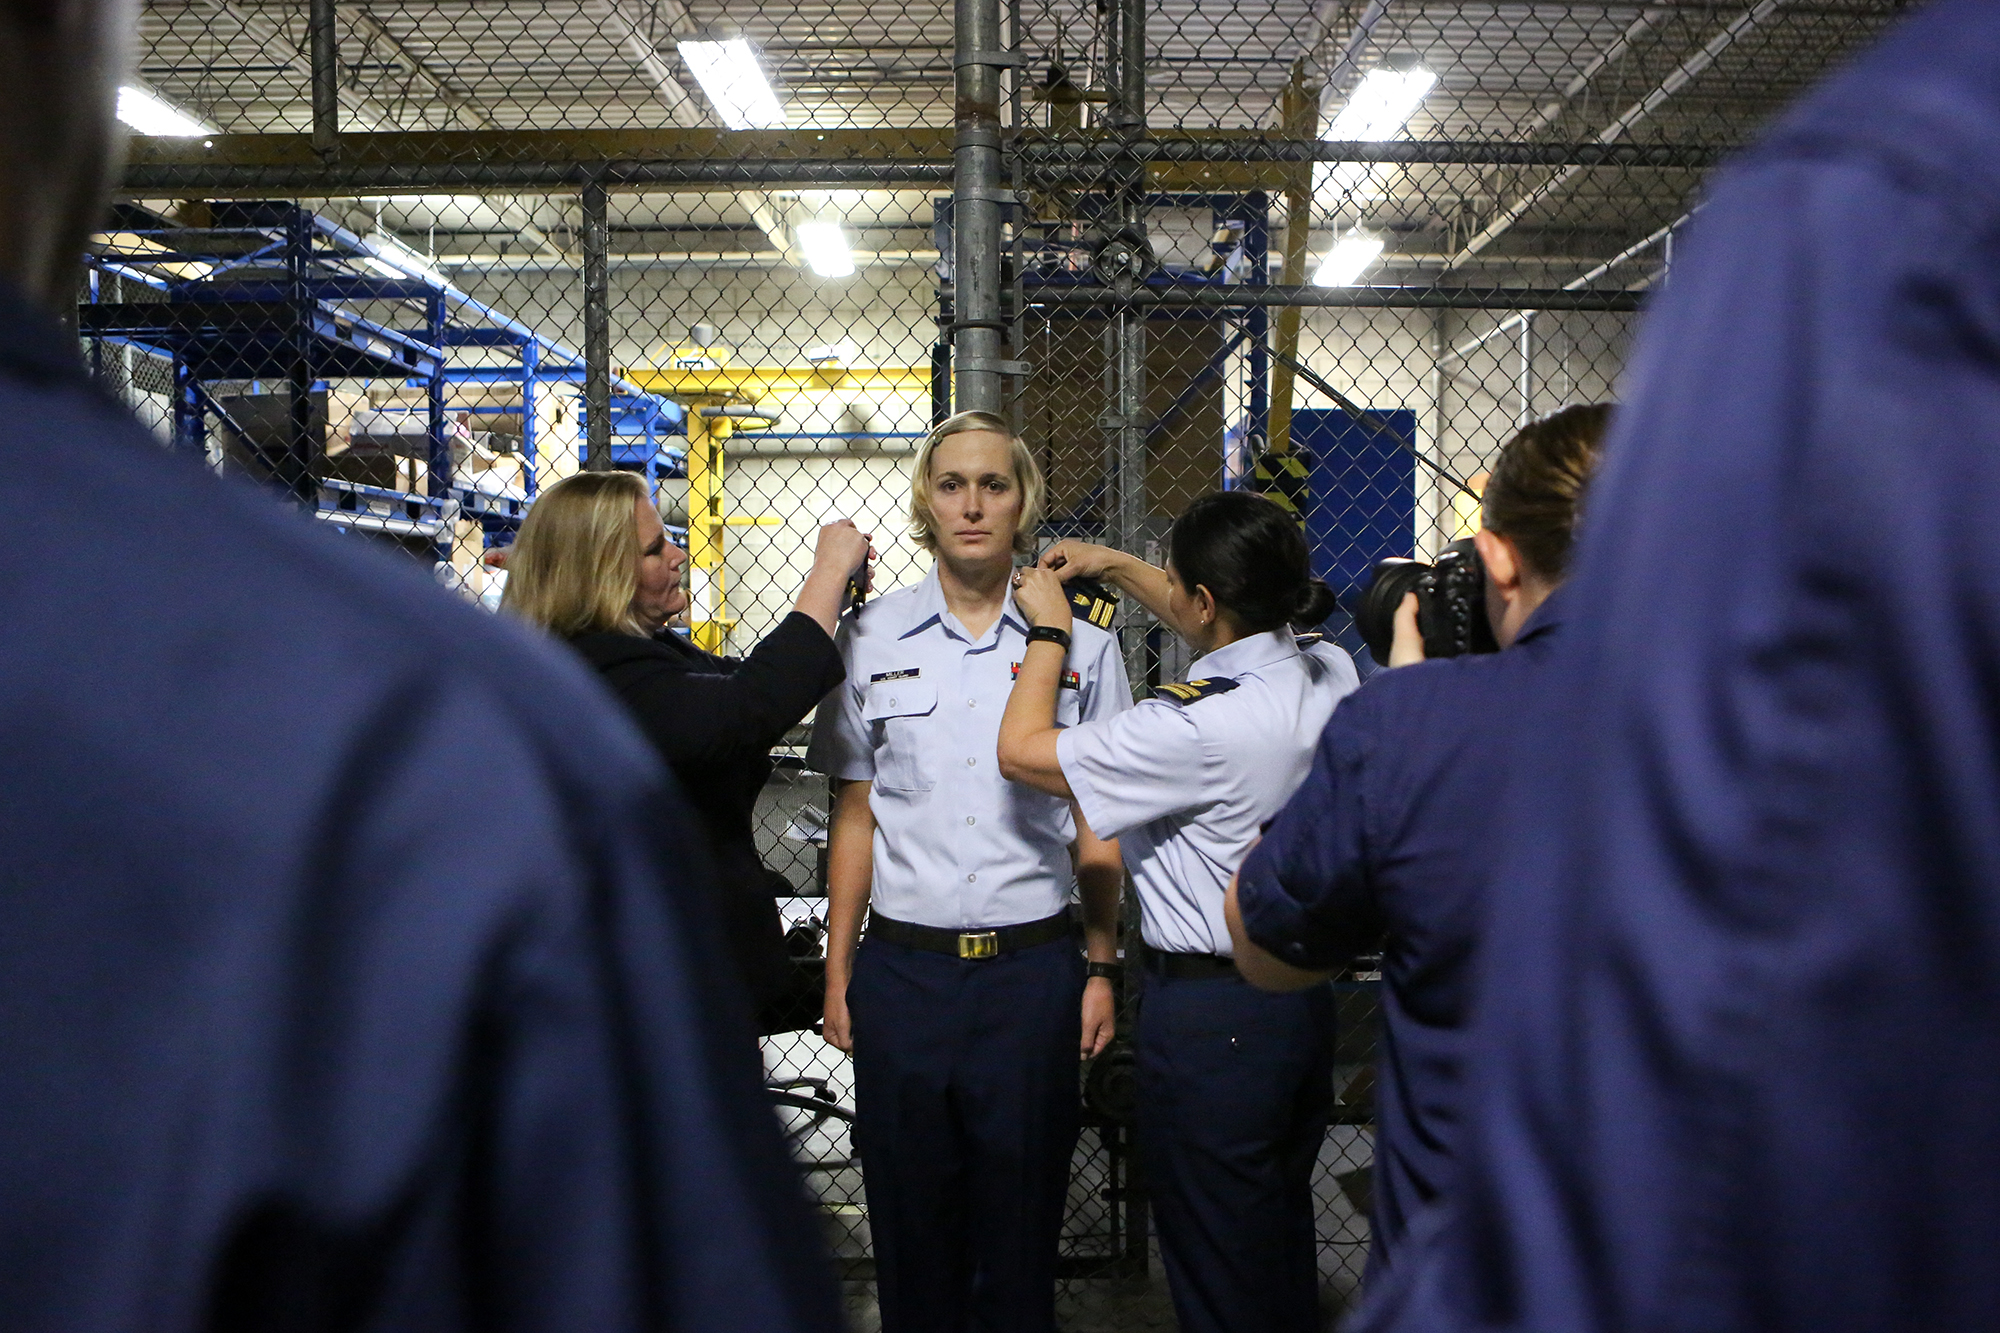 A U S  Coast Guard officer transitions to a woman while on